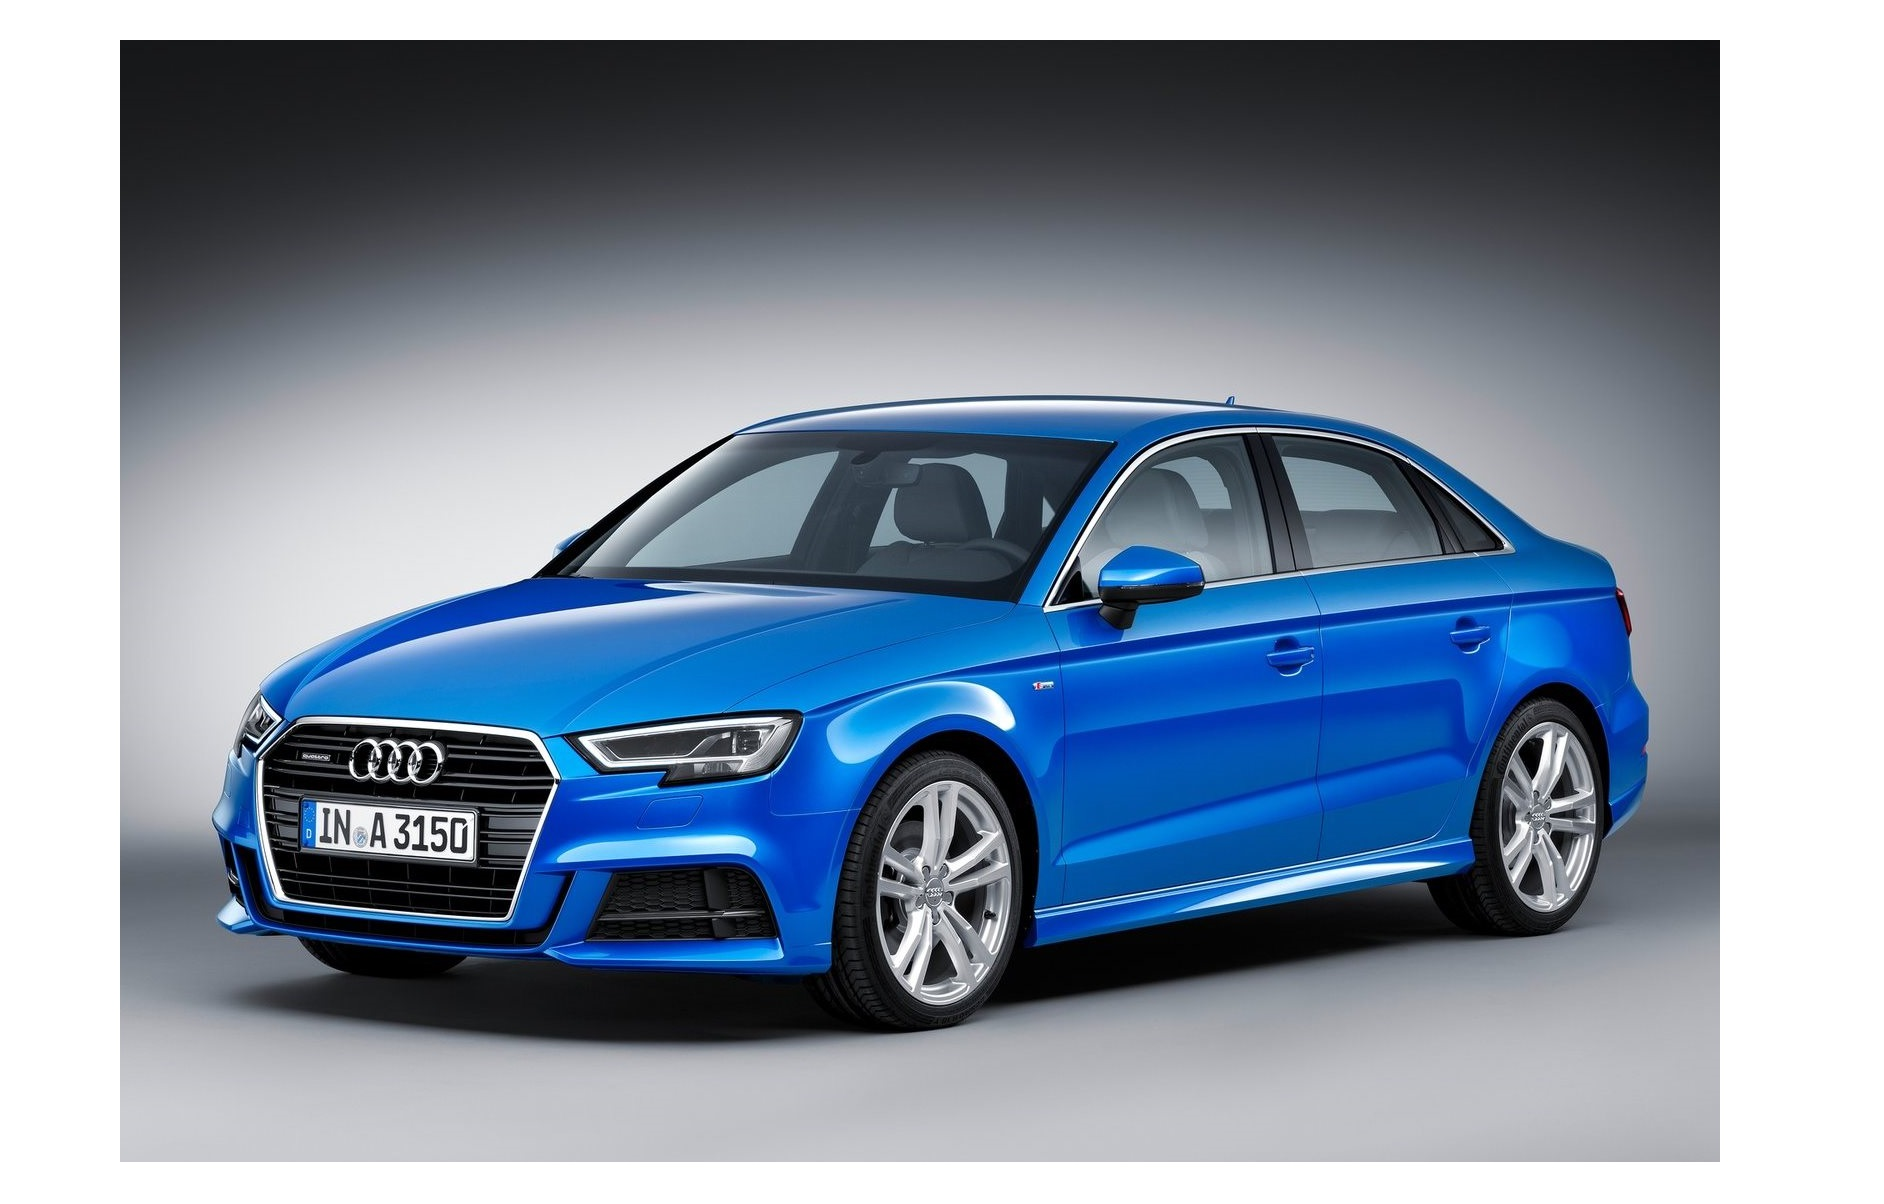 Audi A Sedan Prices In Egypt Gulf Specs Reviews For Cairo - Audi car egypt